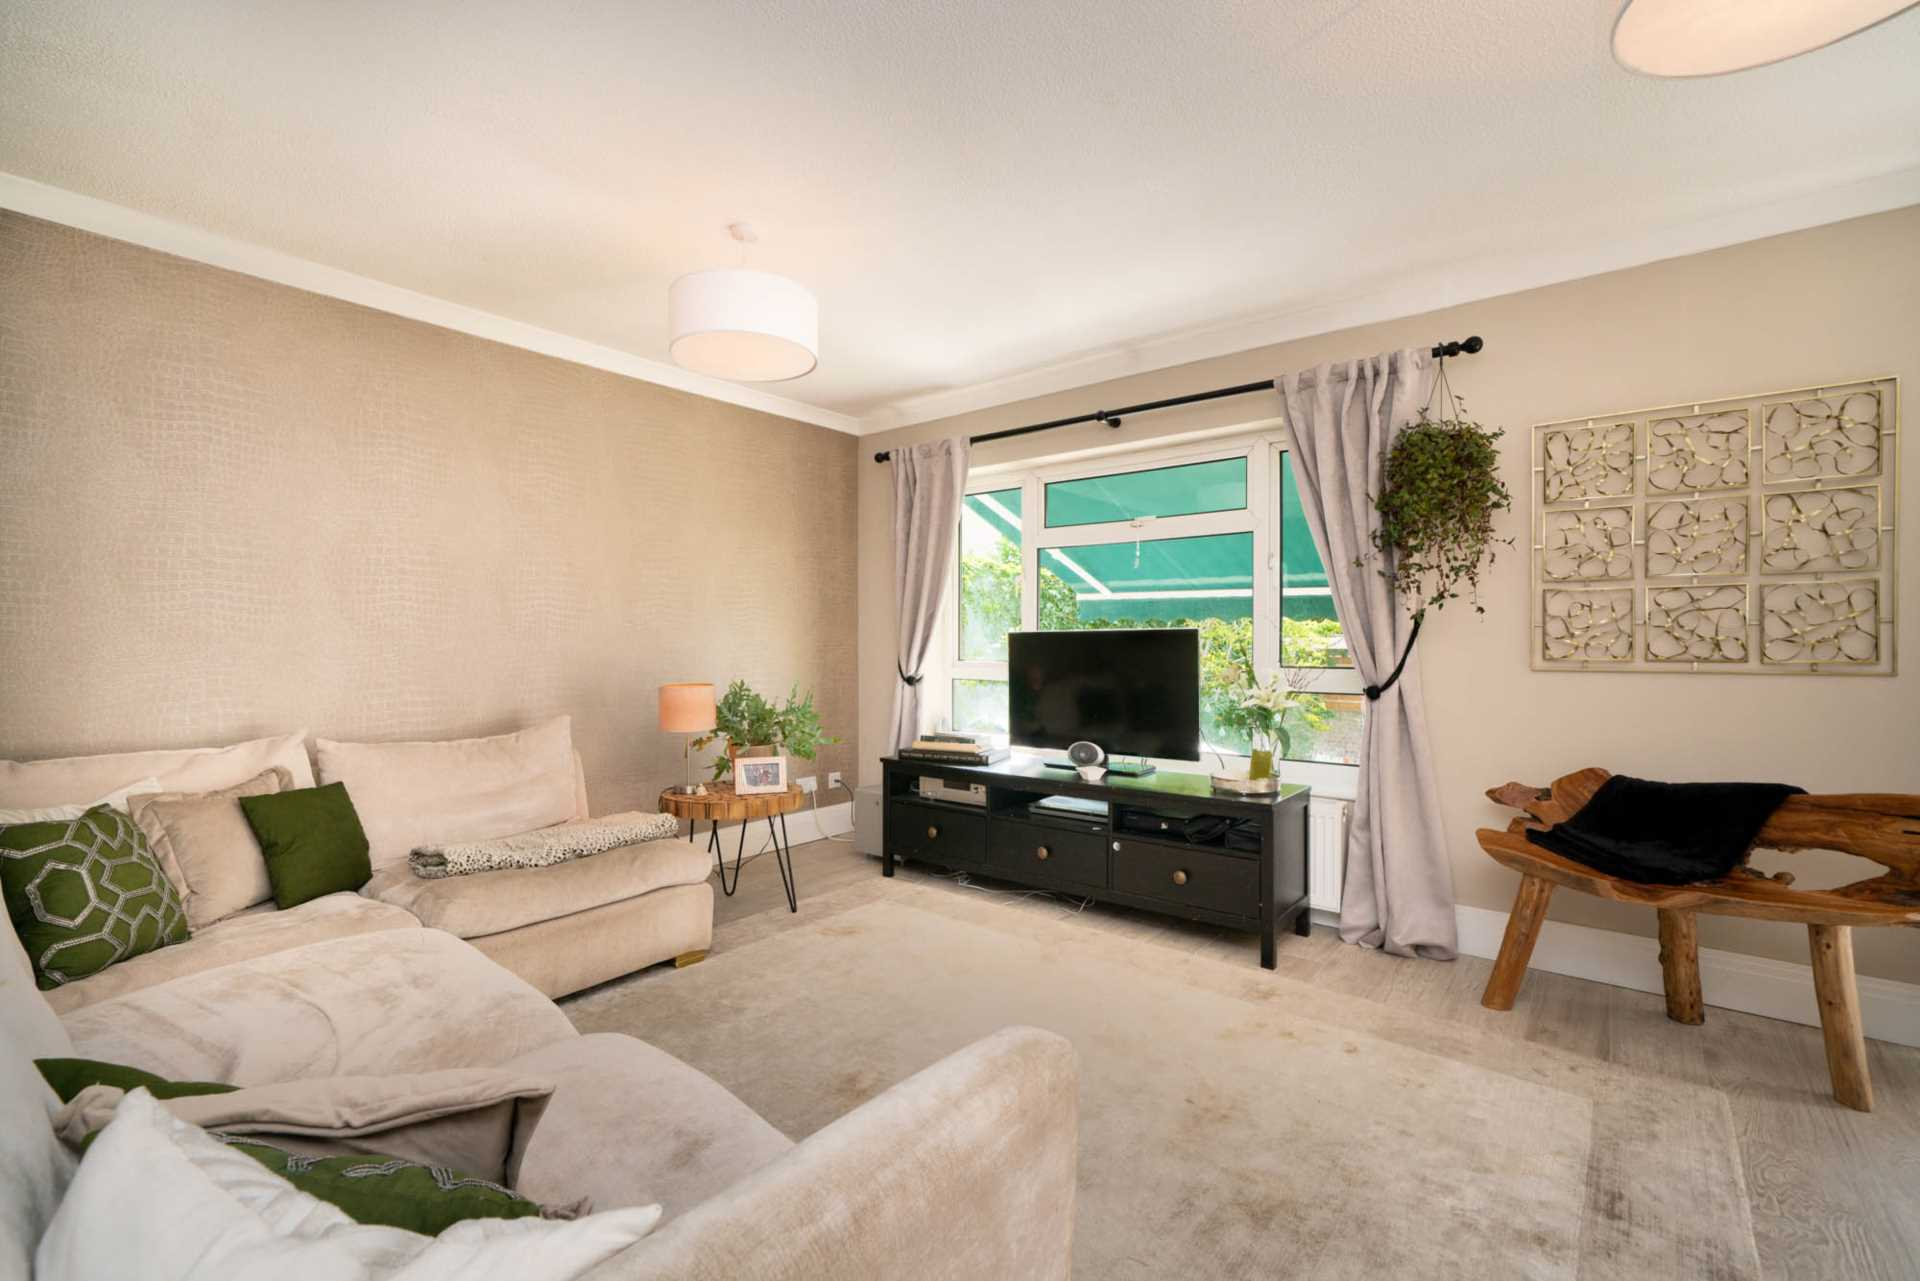 REFURBISHED 4 DOUBLE BEDROOM - SOUGHT AFTER OLD TOWN, HP2, Image 4